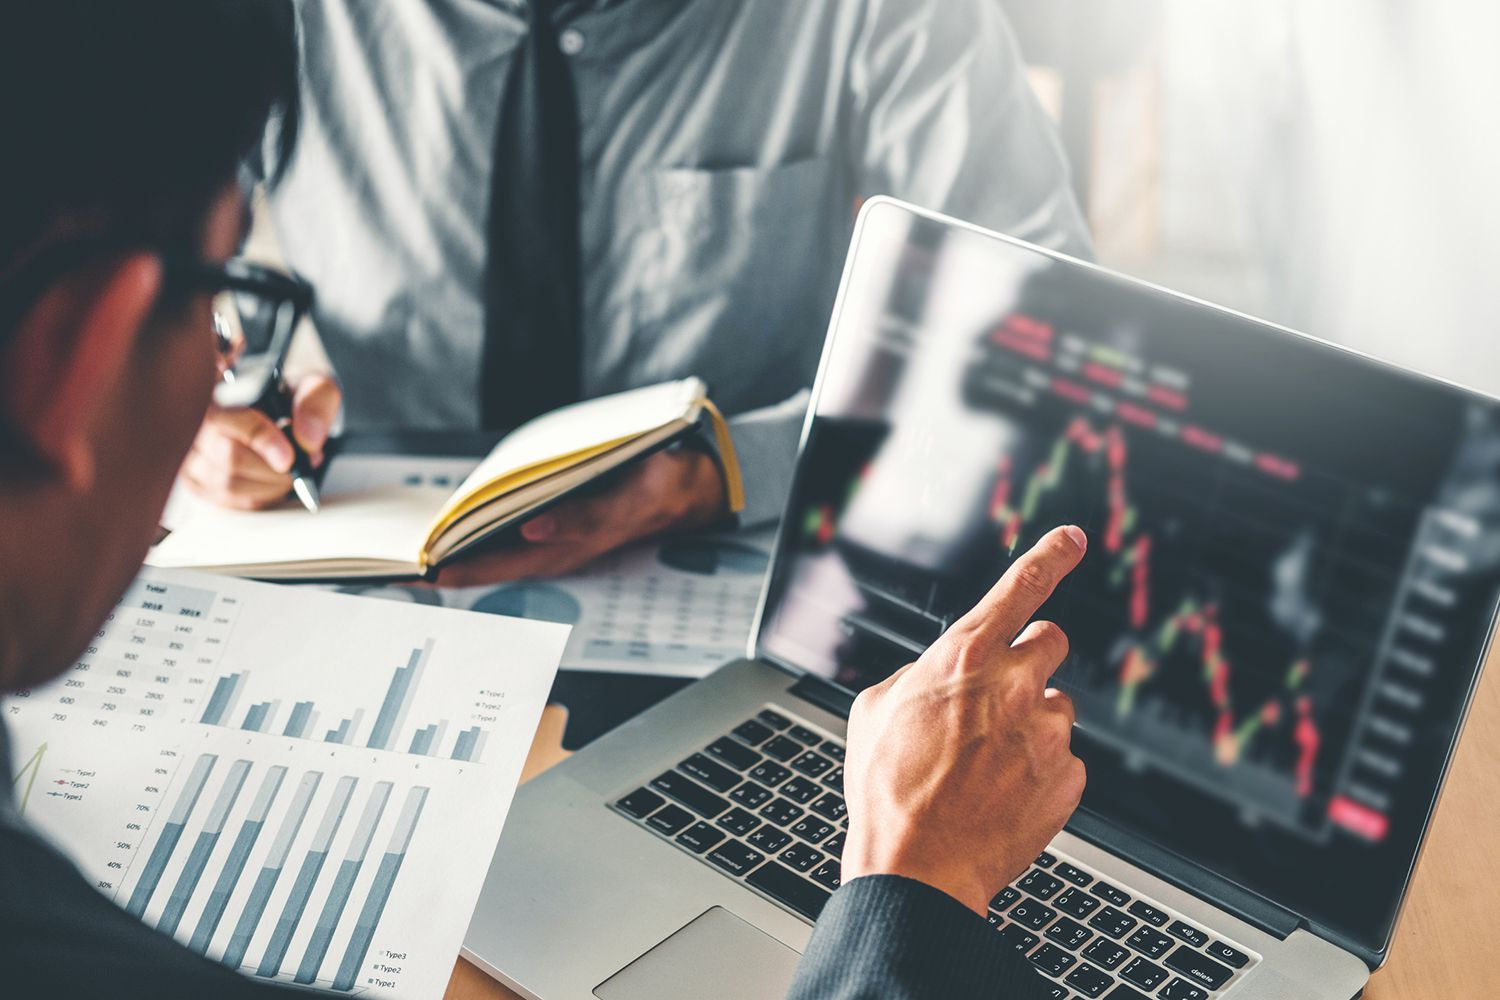 How to Analyze a Company's Financial Position